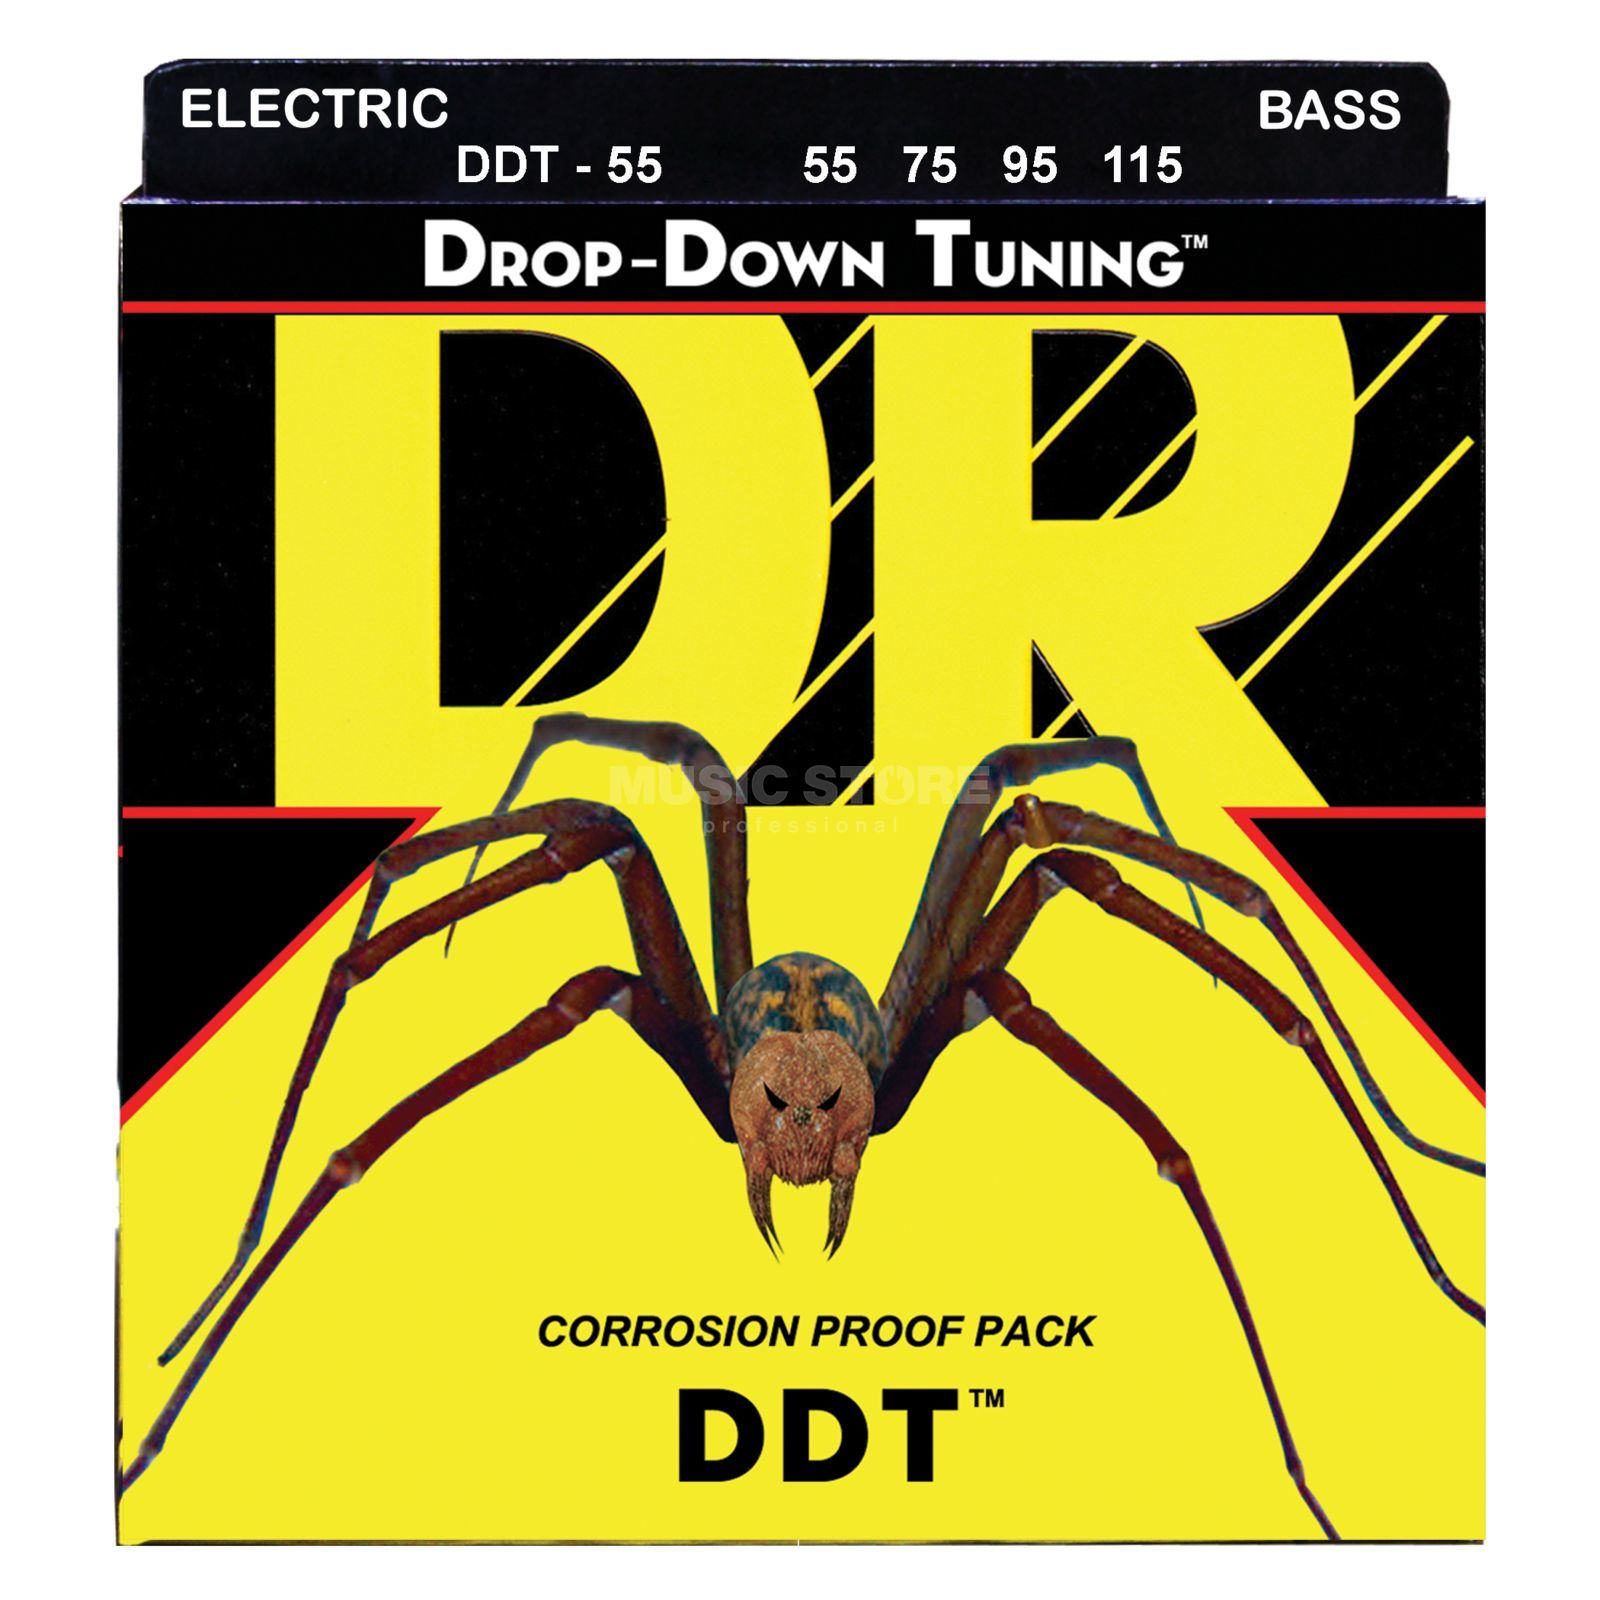 DR 4 Bass Strings 55-115 Drop-Down Tuning DDT-55 Immagine prodotto